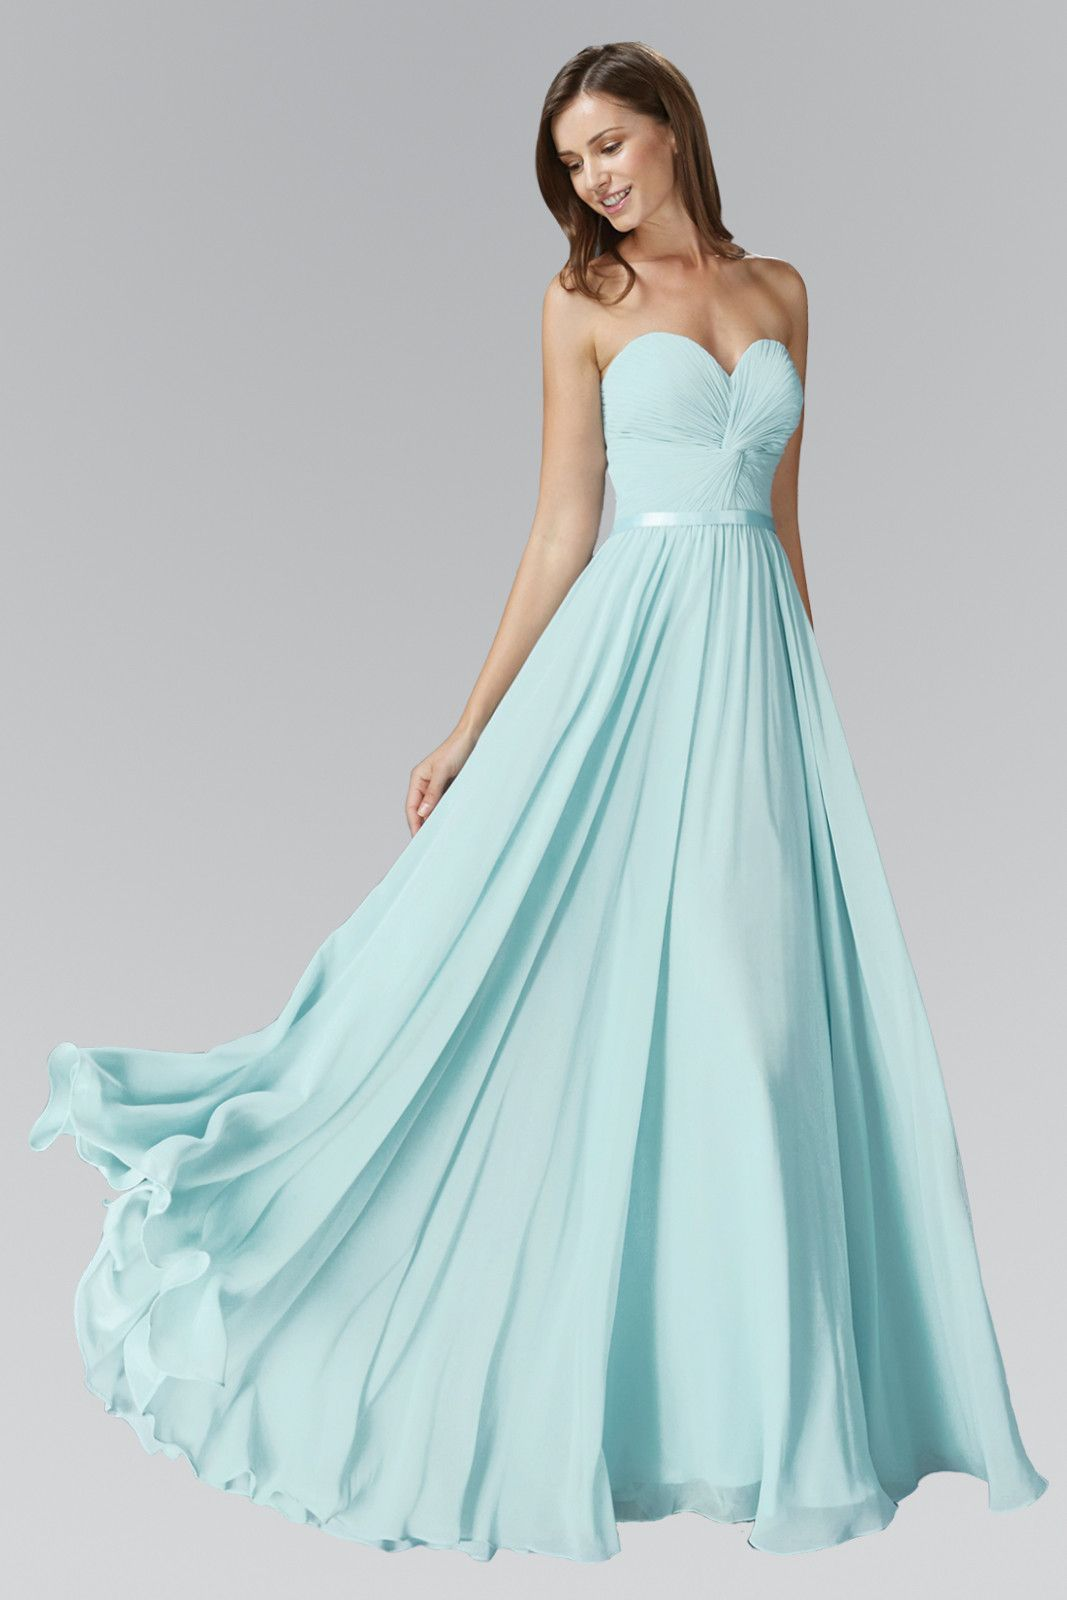 b755d213330c High End Floor length Chiffon Bridesmaid Dress in lovely pastel colors of  Rose